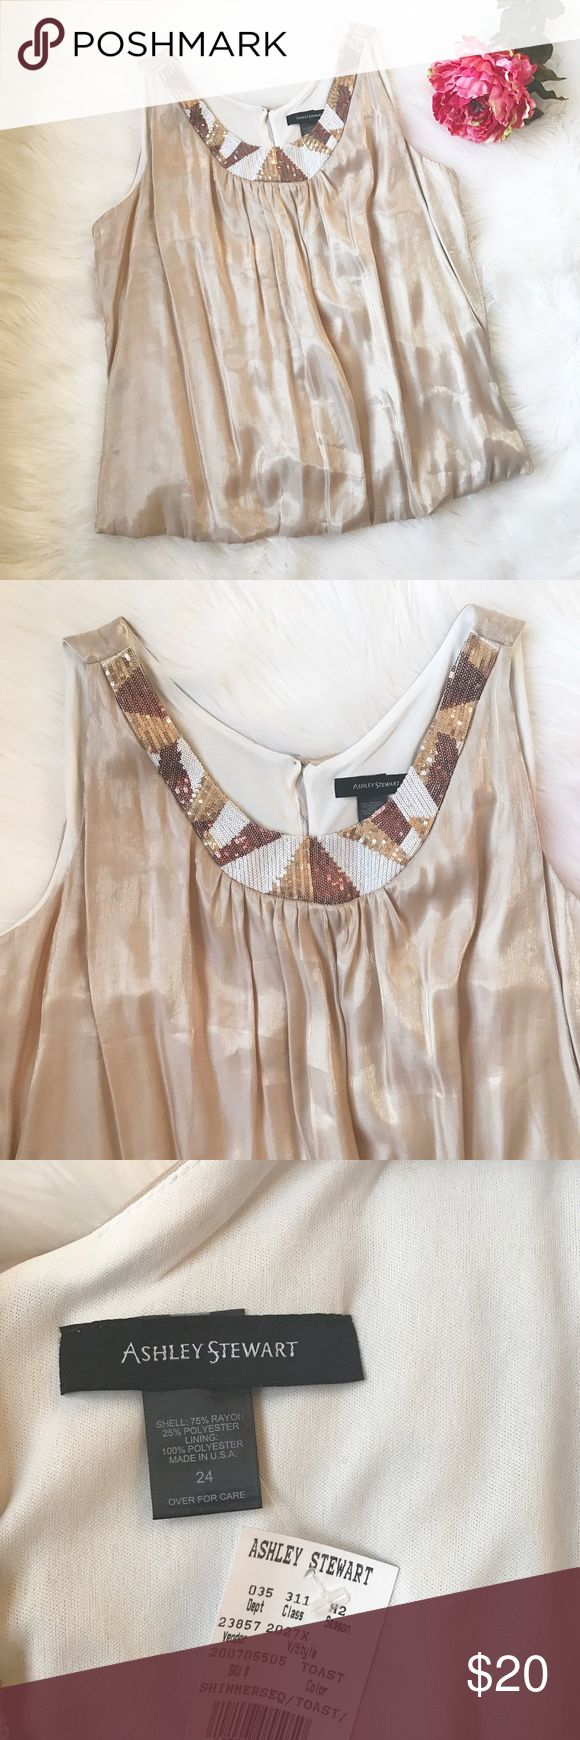 Ashley Stewart Sequin Tank Beautiful dressy tank with sequin embellishment. Brand new condition 💕 Ashley Stewart Tops Tank Tops